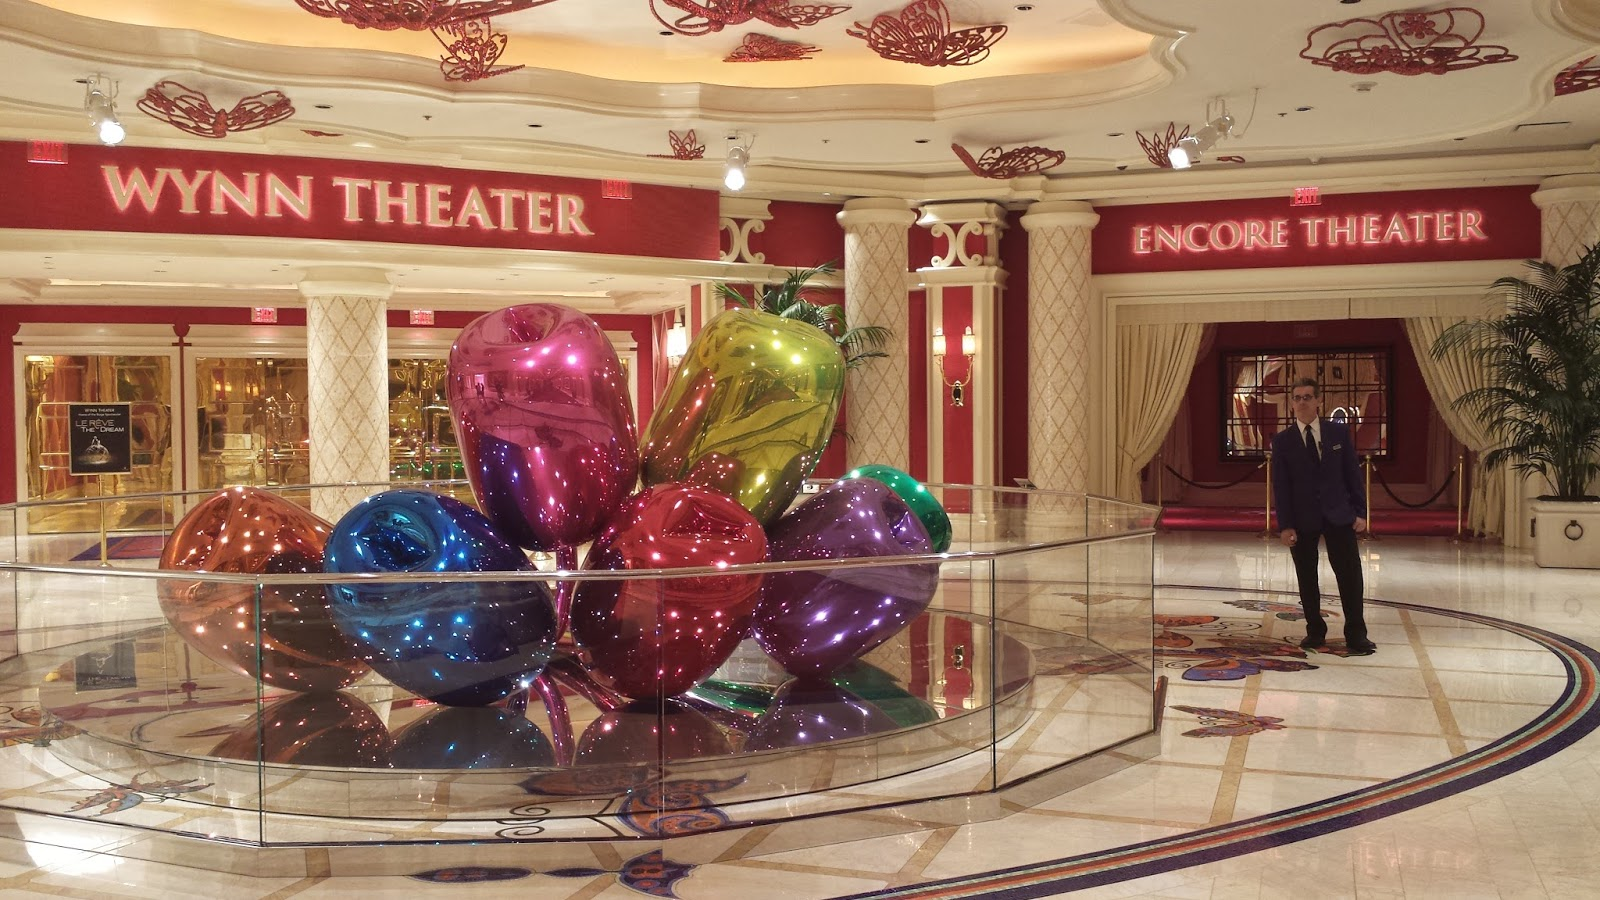 Wynn e Encore Theater